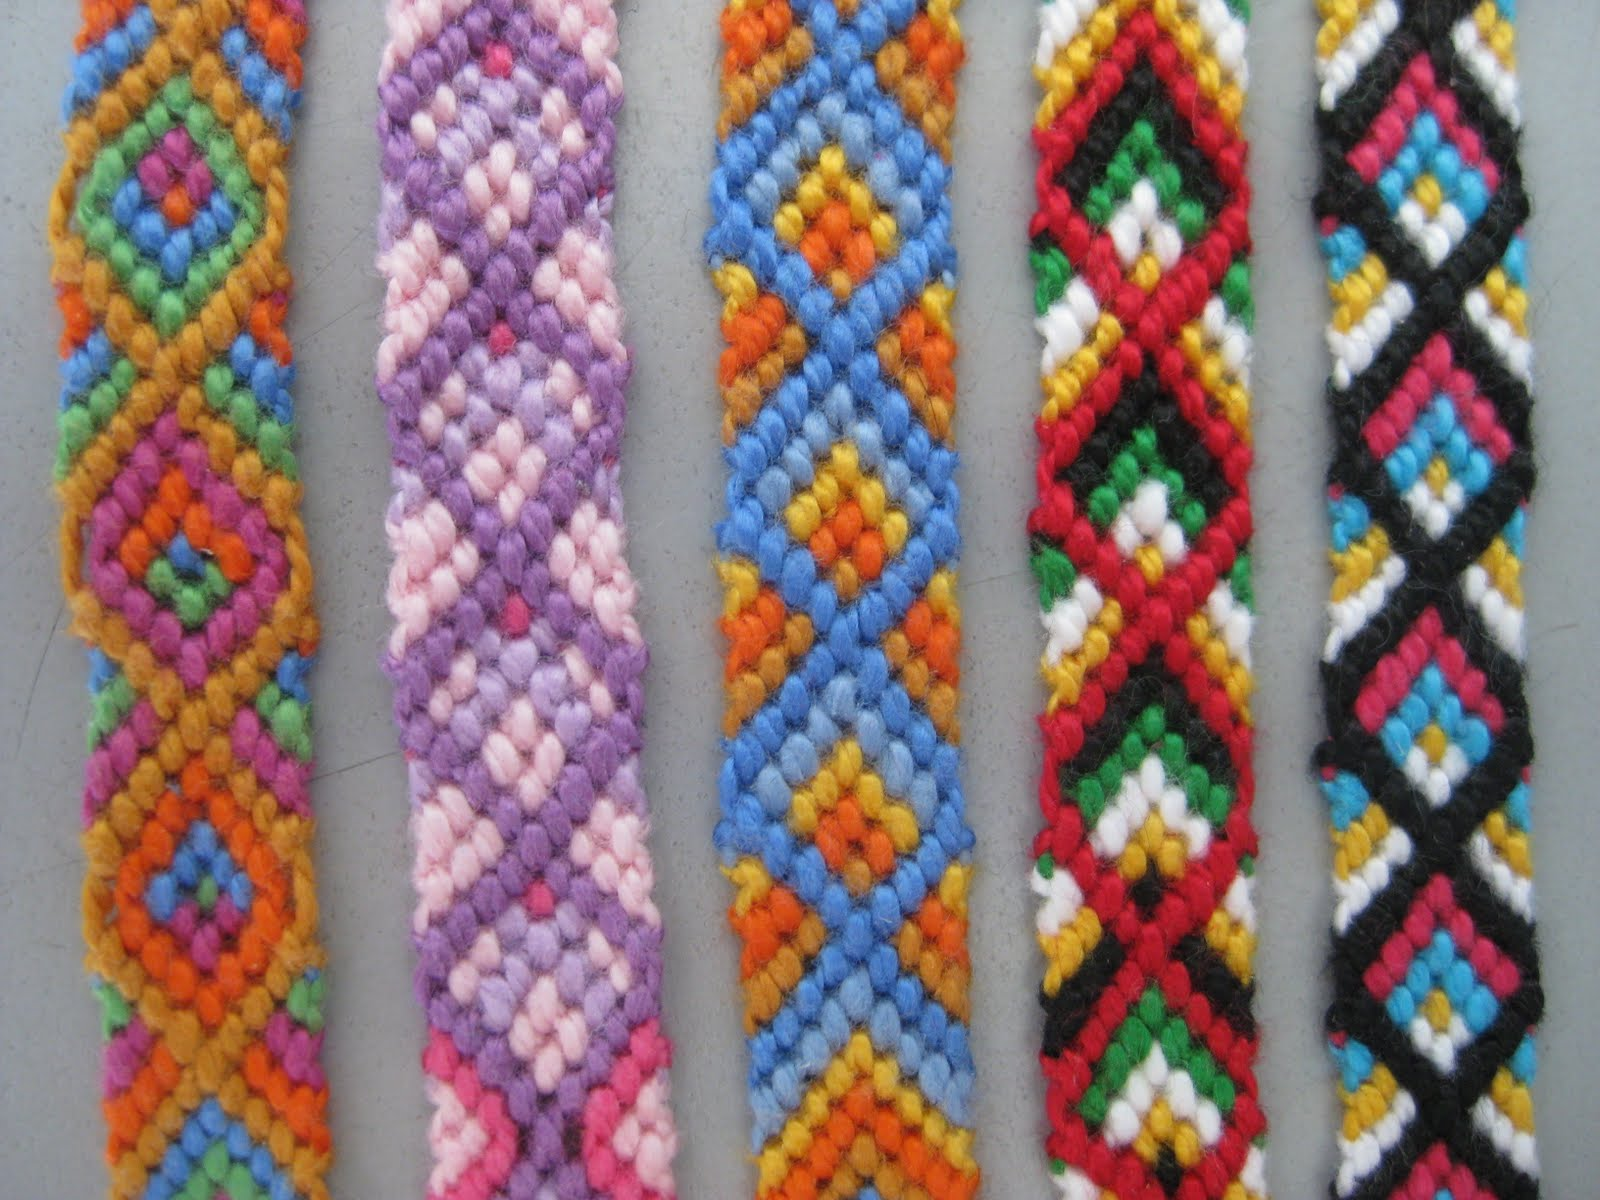 bracelets deviantart friendship simpelway gallery beautyofcrafts bracelet on embroidery by